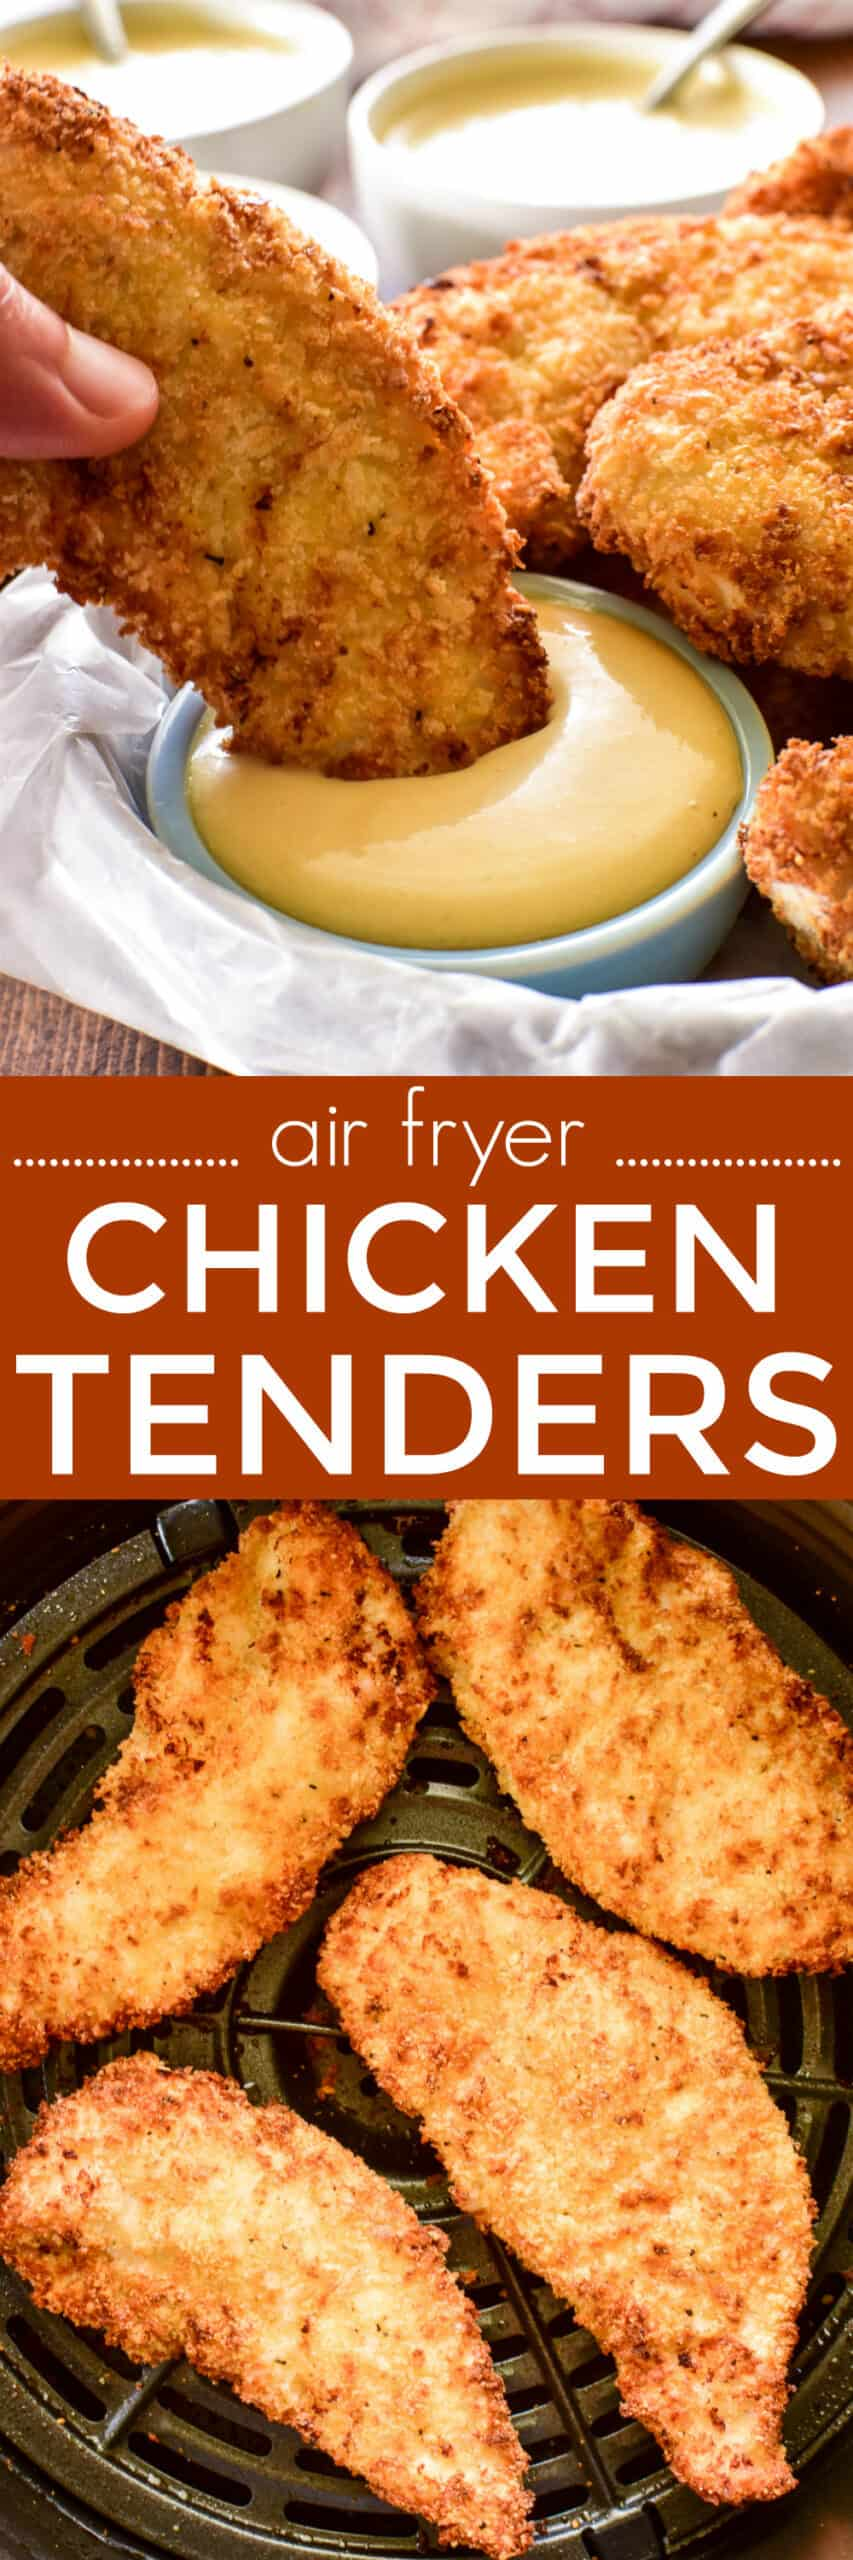 Collage image of Air Fryer Chicken Tenders